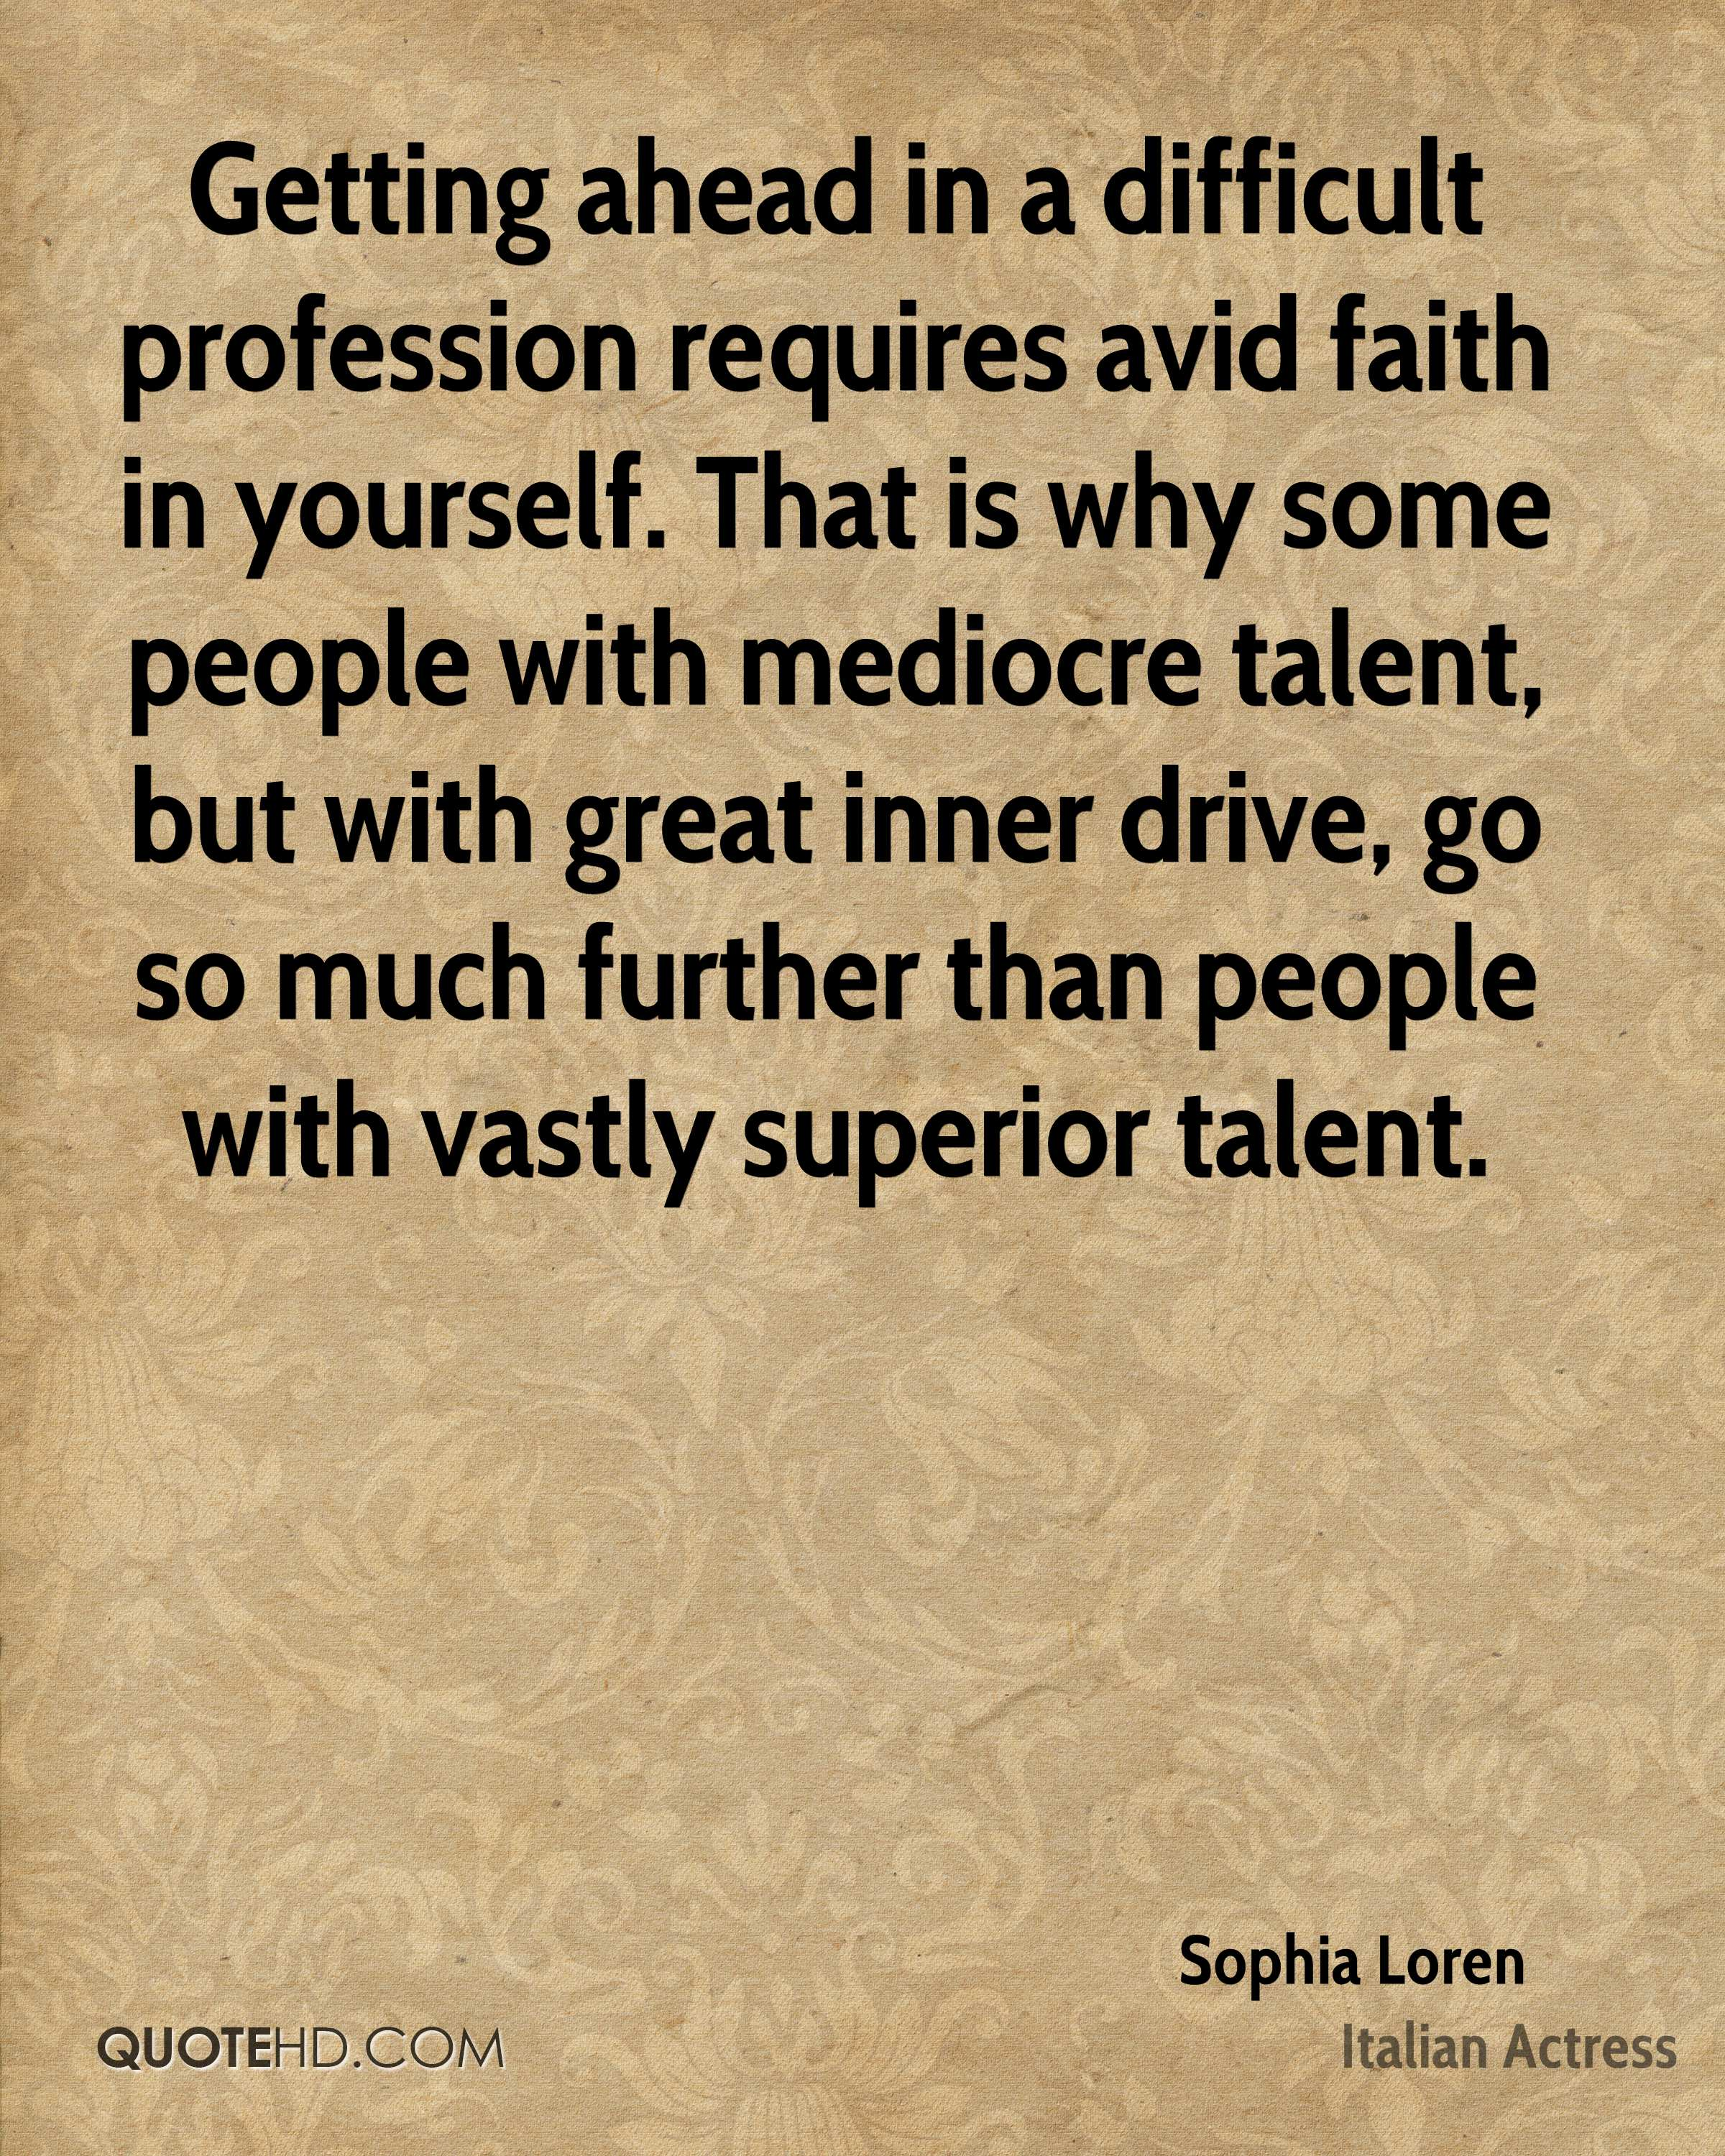 Getting ahead in a difficult profession requires avid faith in yourself. That is why some people with mediocre talent, but with great inner drive, go so much further than people with vastly superior talent.